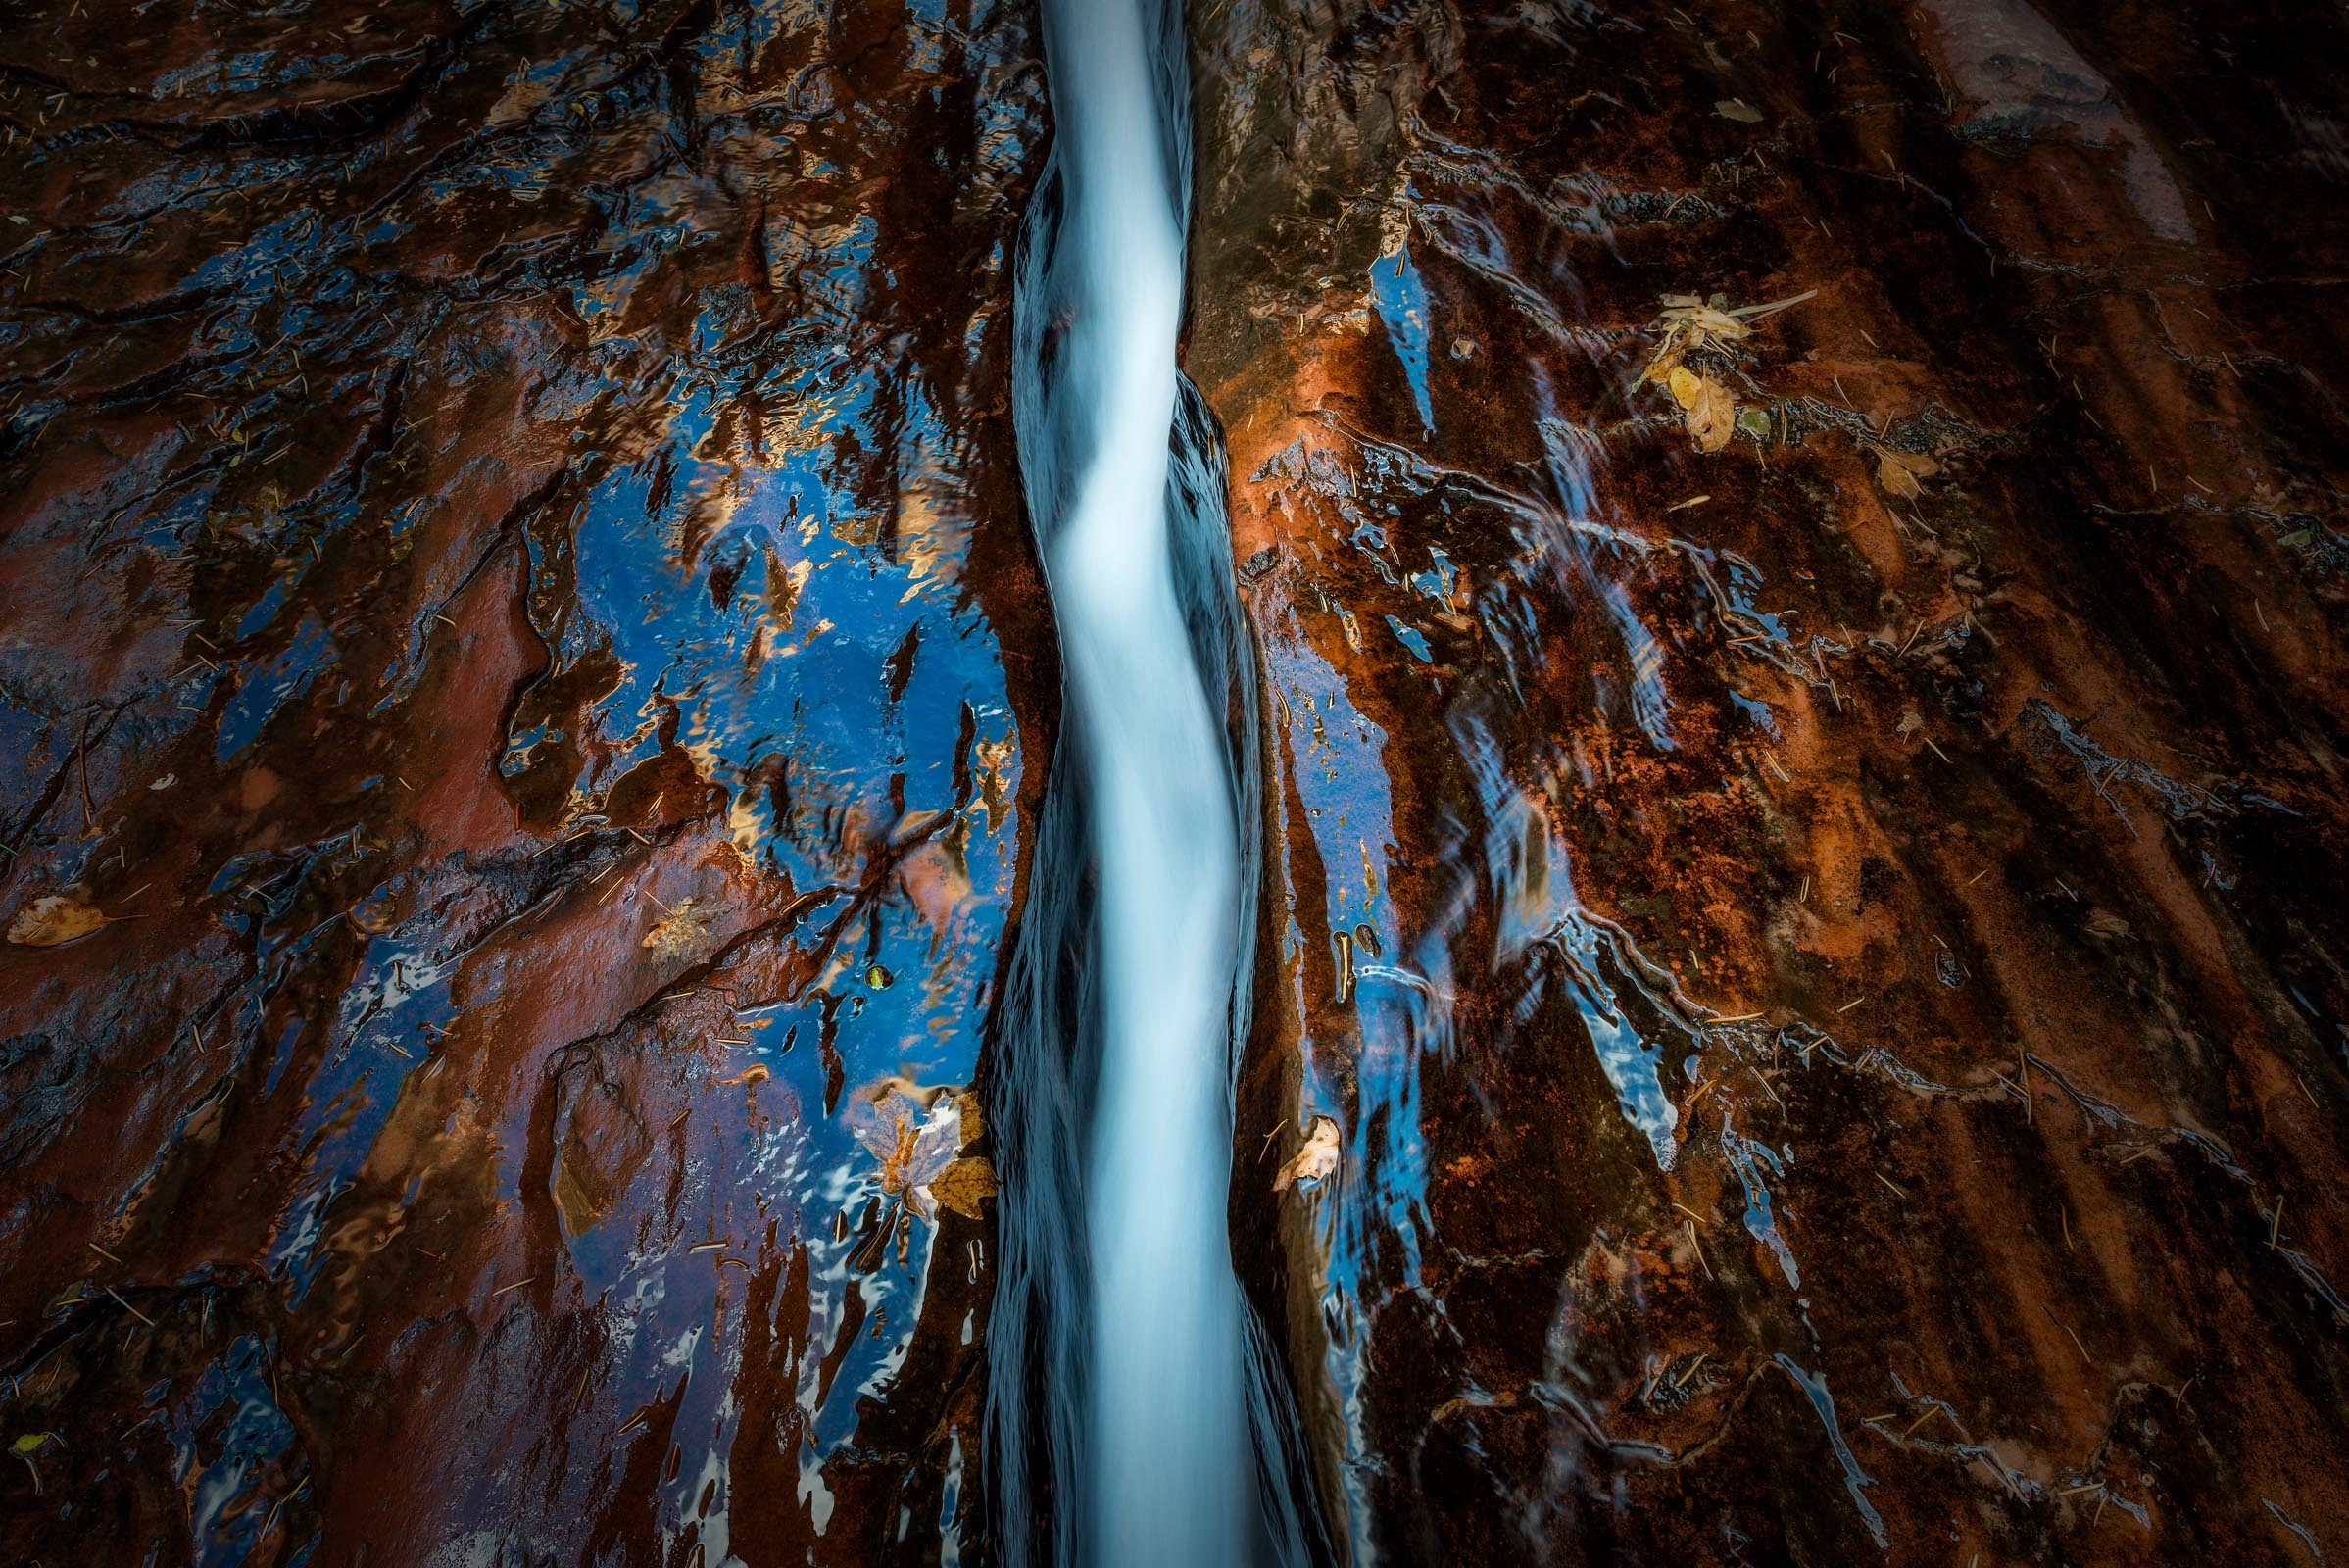 Photograph of The Crack in Zion, Utah by Brent Goldman Photography